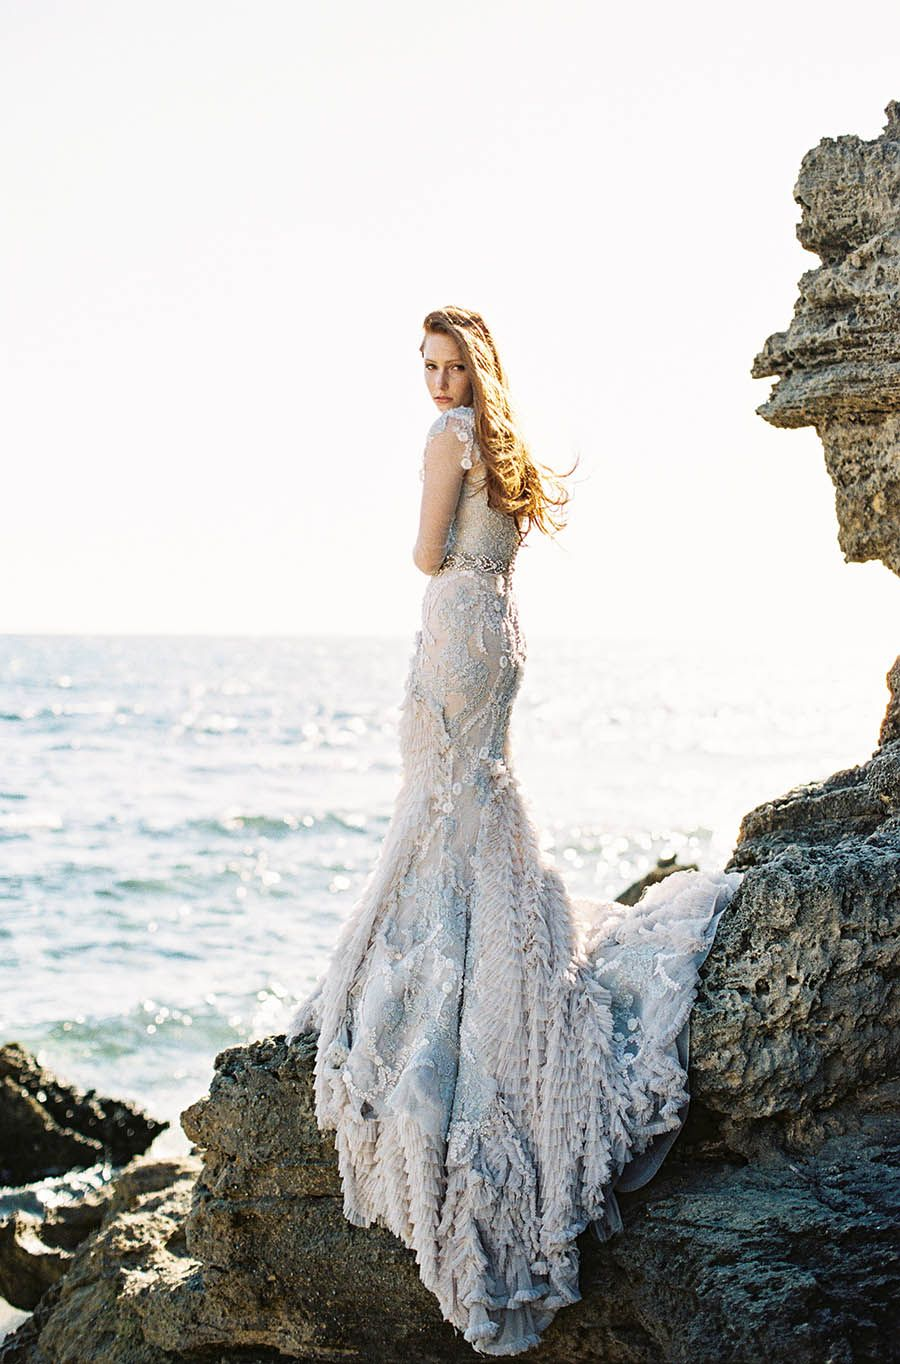 Mermaid Inspiration With an Other-Worldly Gown